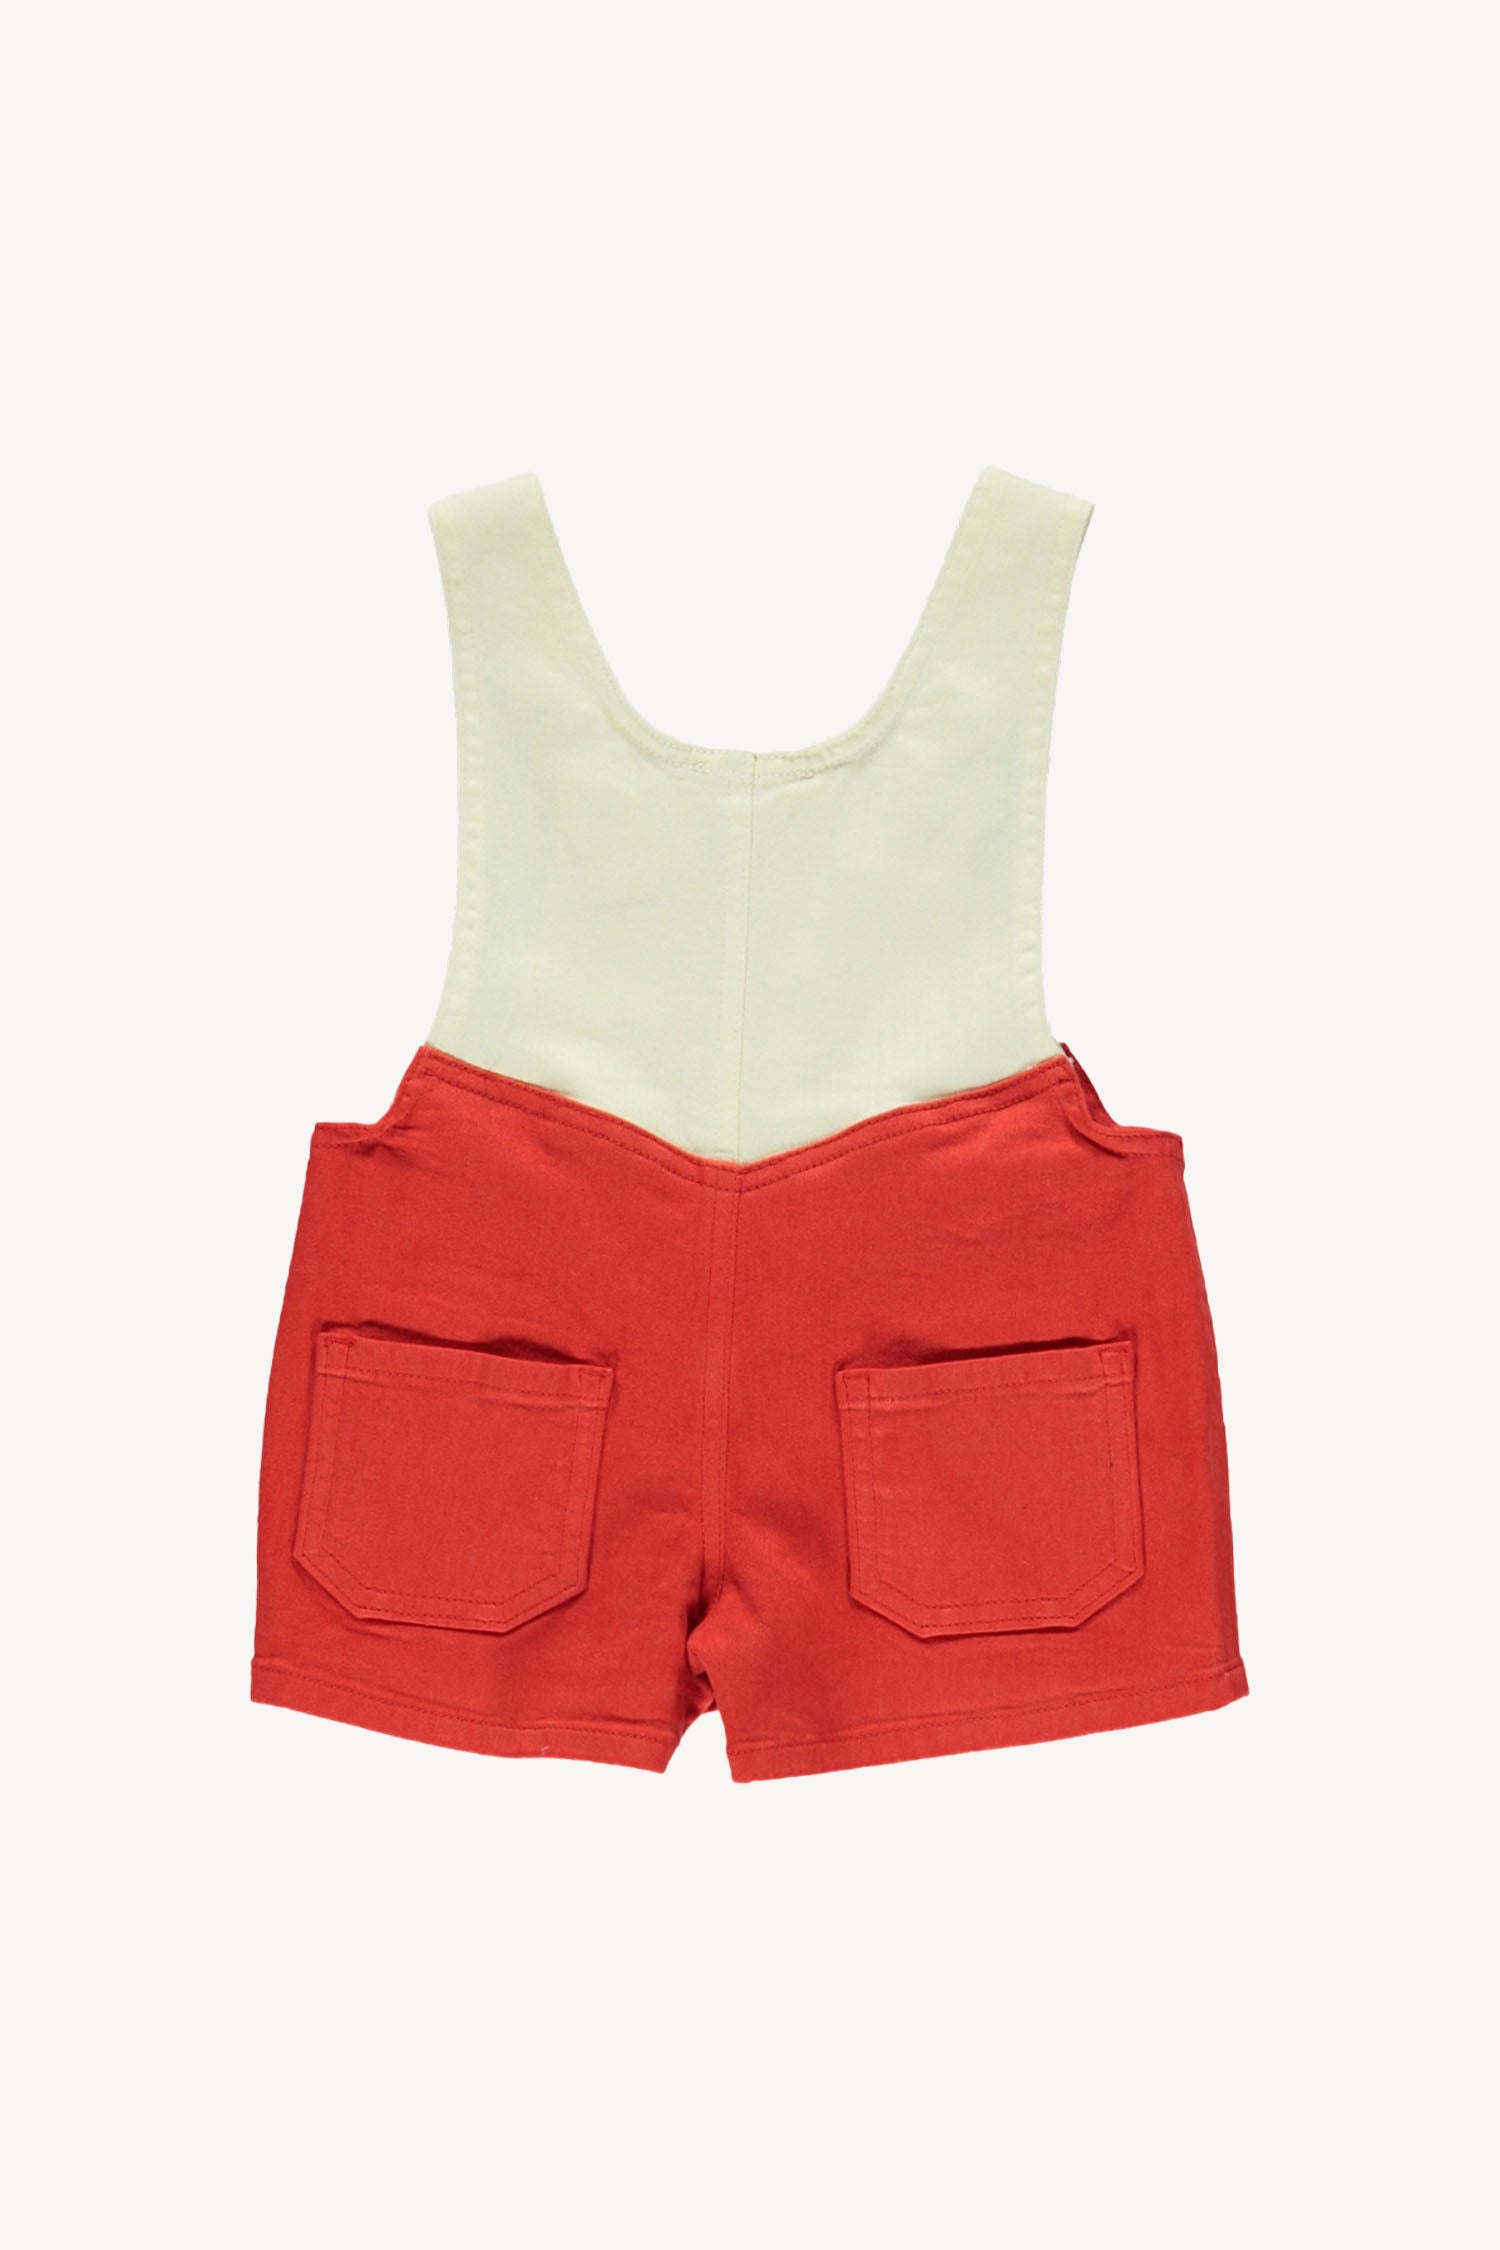 Fin and Vince - Twill Short Overall (Brick Red/Vanilla) - Last 3/6